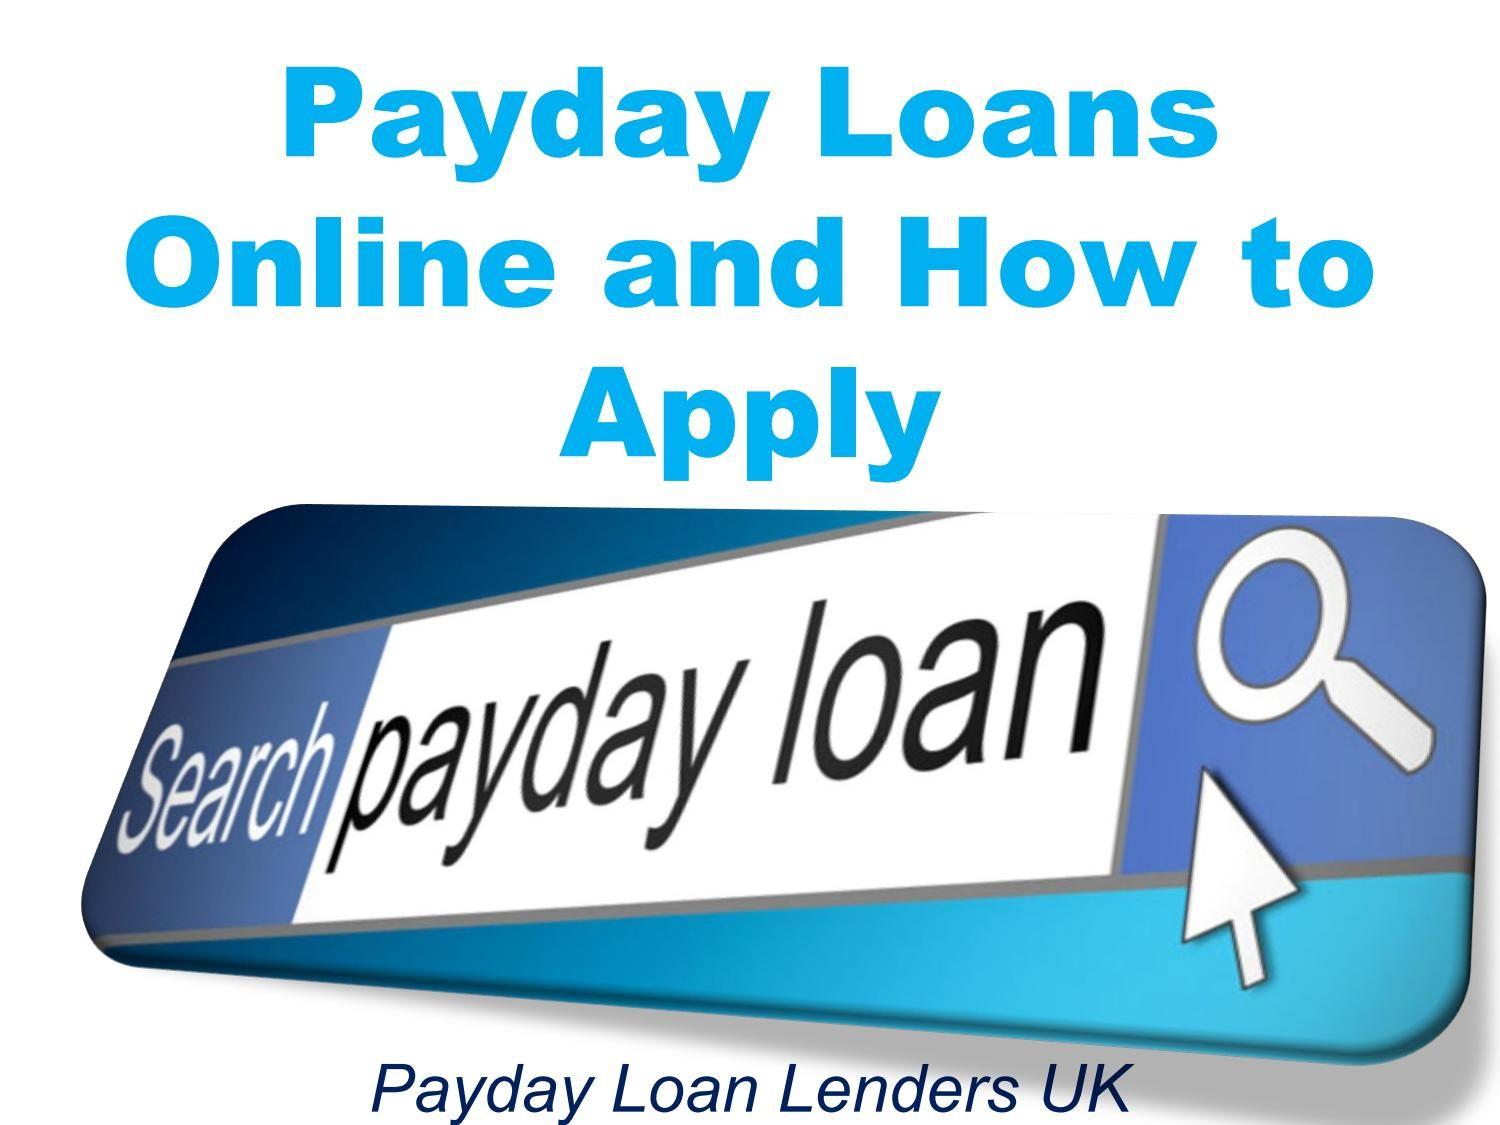 Payday Loans Online And How To Apply Payday Loans Online Payday Loans Payday